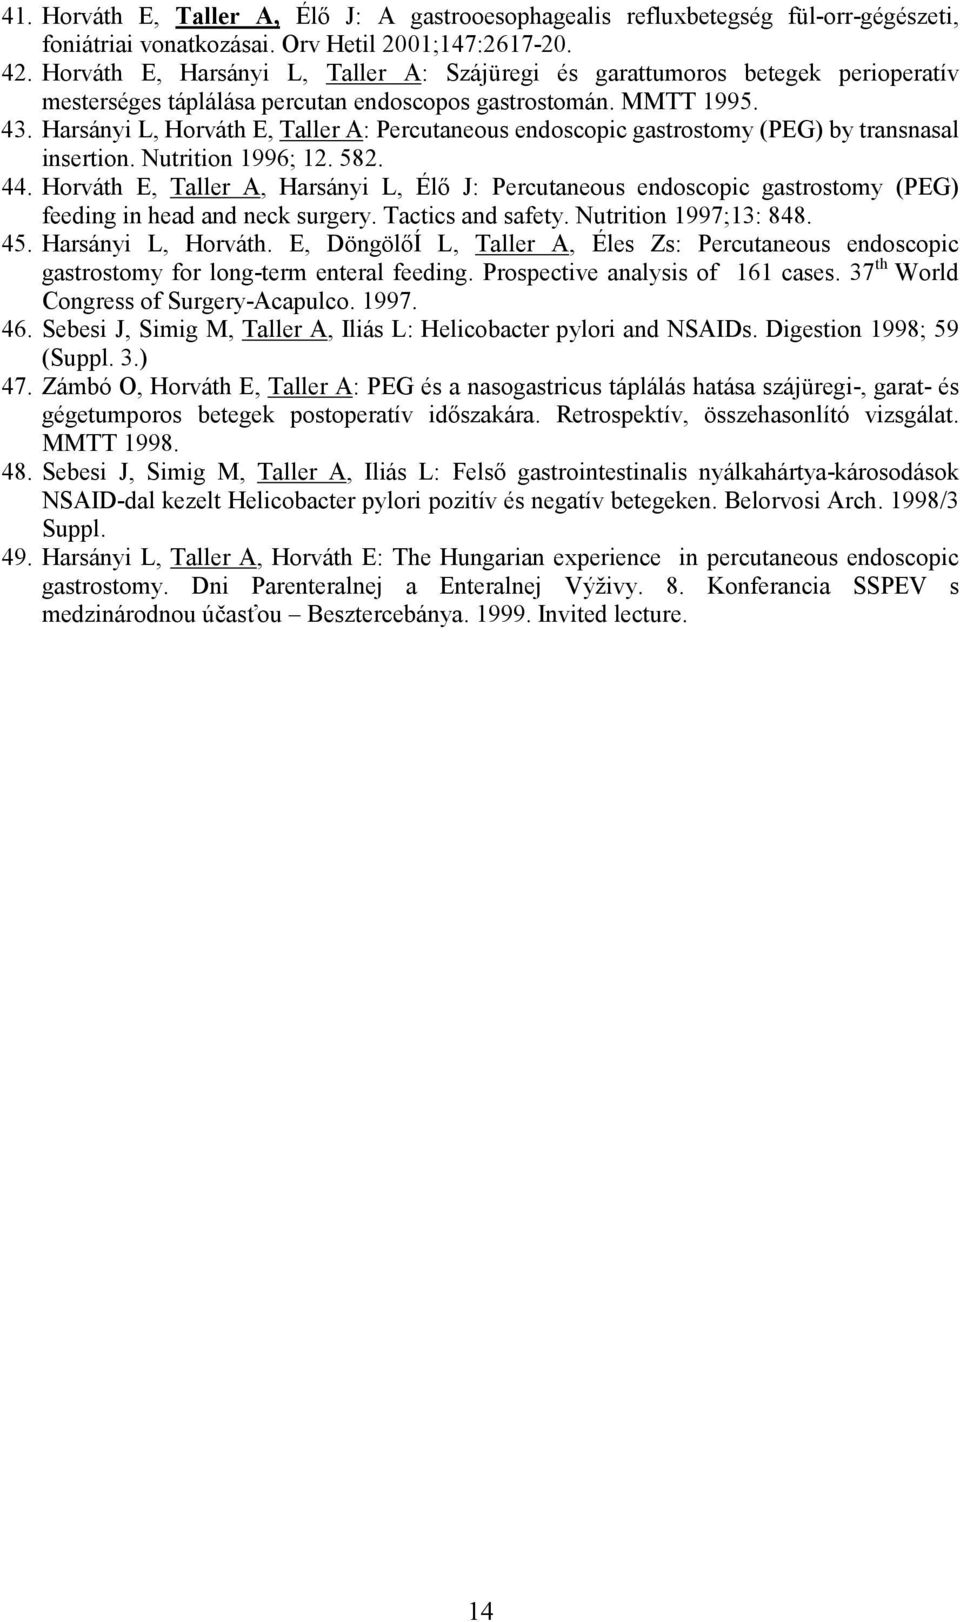 Harsányi L, Horváth E, Taller A: Percutaneous endoscopic gastrostomy (PEG) by transnasal insertion. Nutrition 1996; 12. 582. 44.